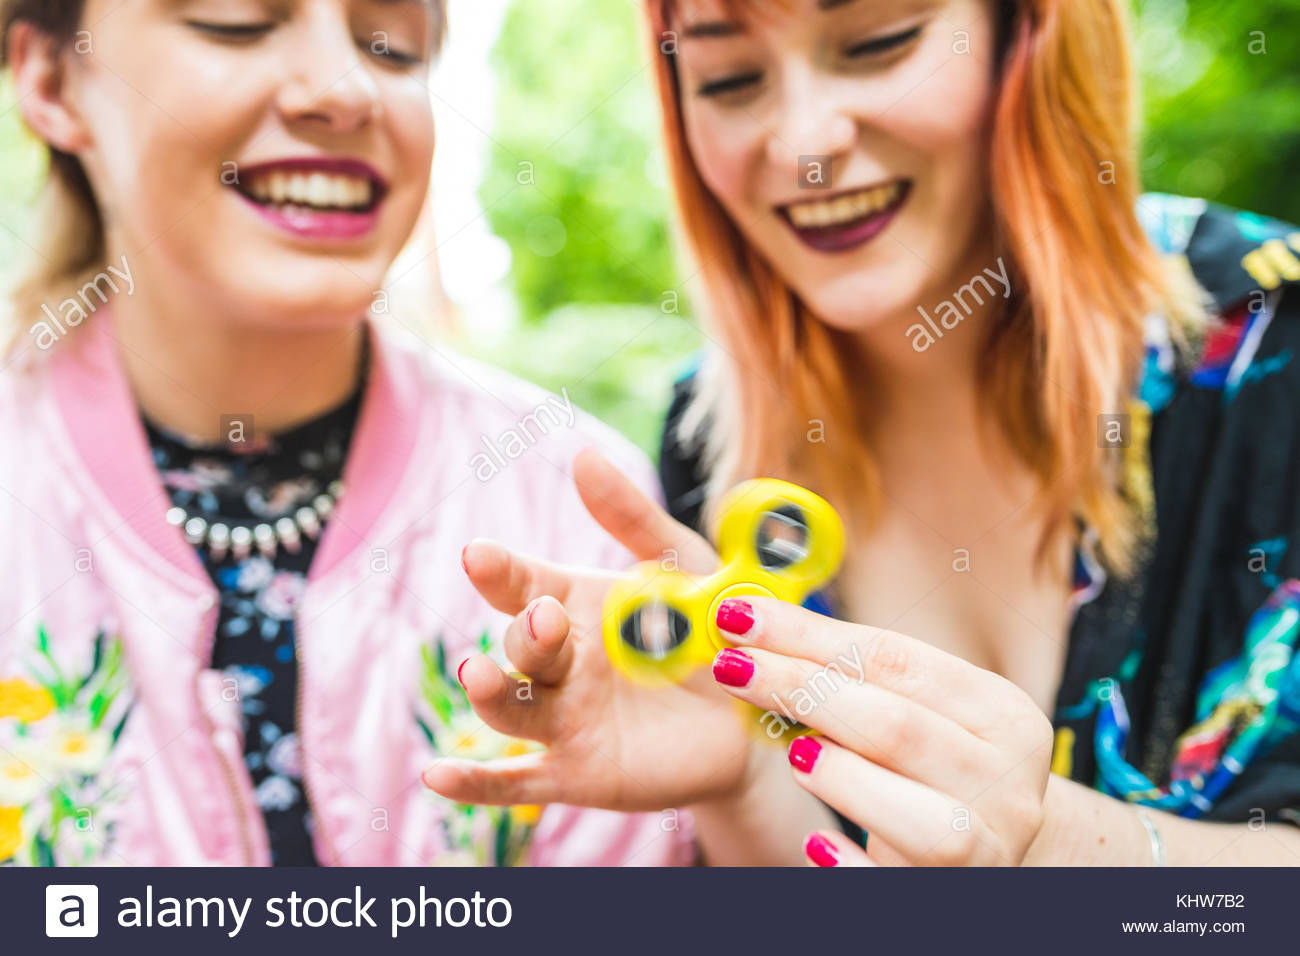 Two retro styled young women playing with fidget spinner in park - Stock Image